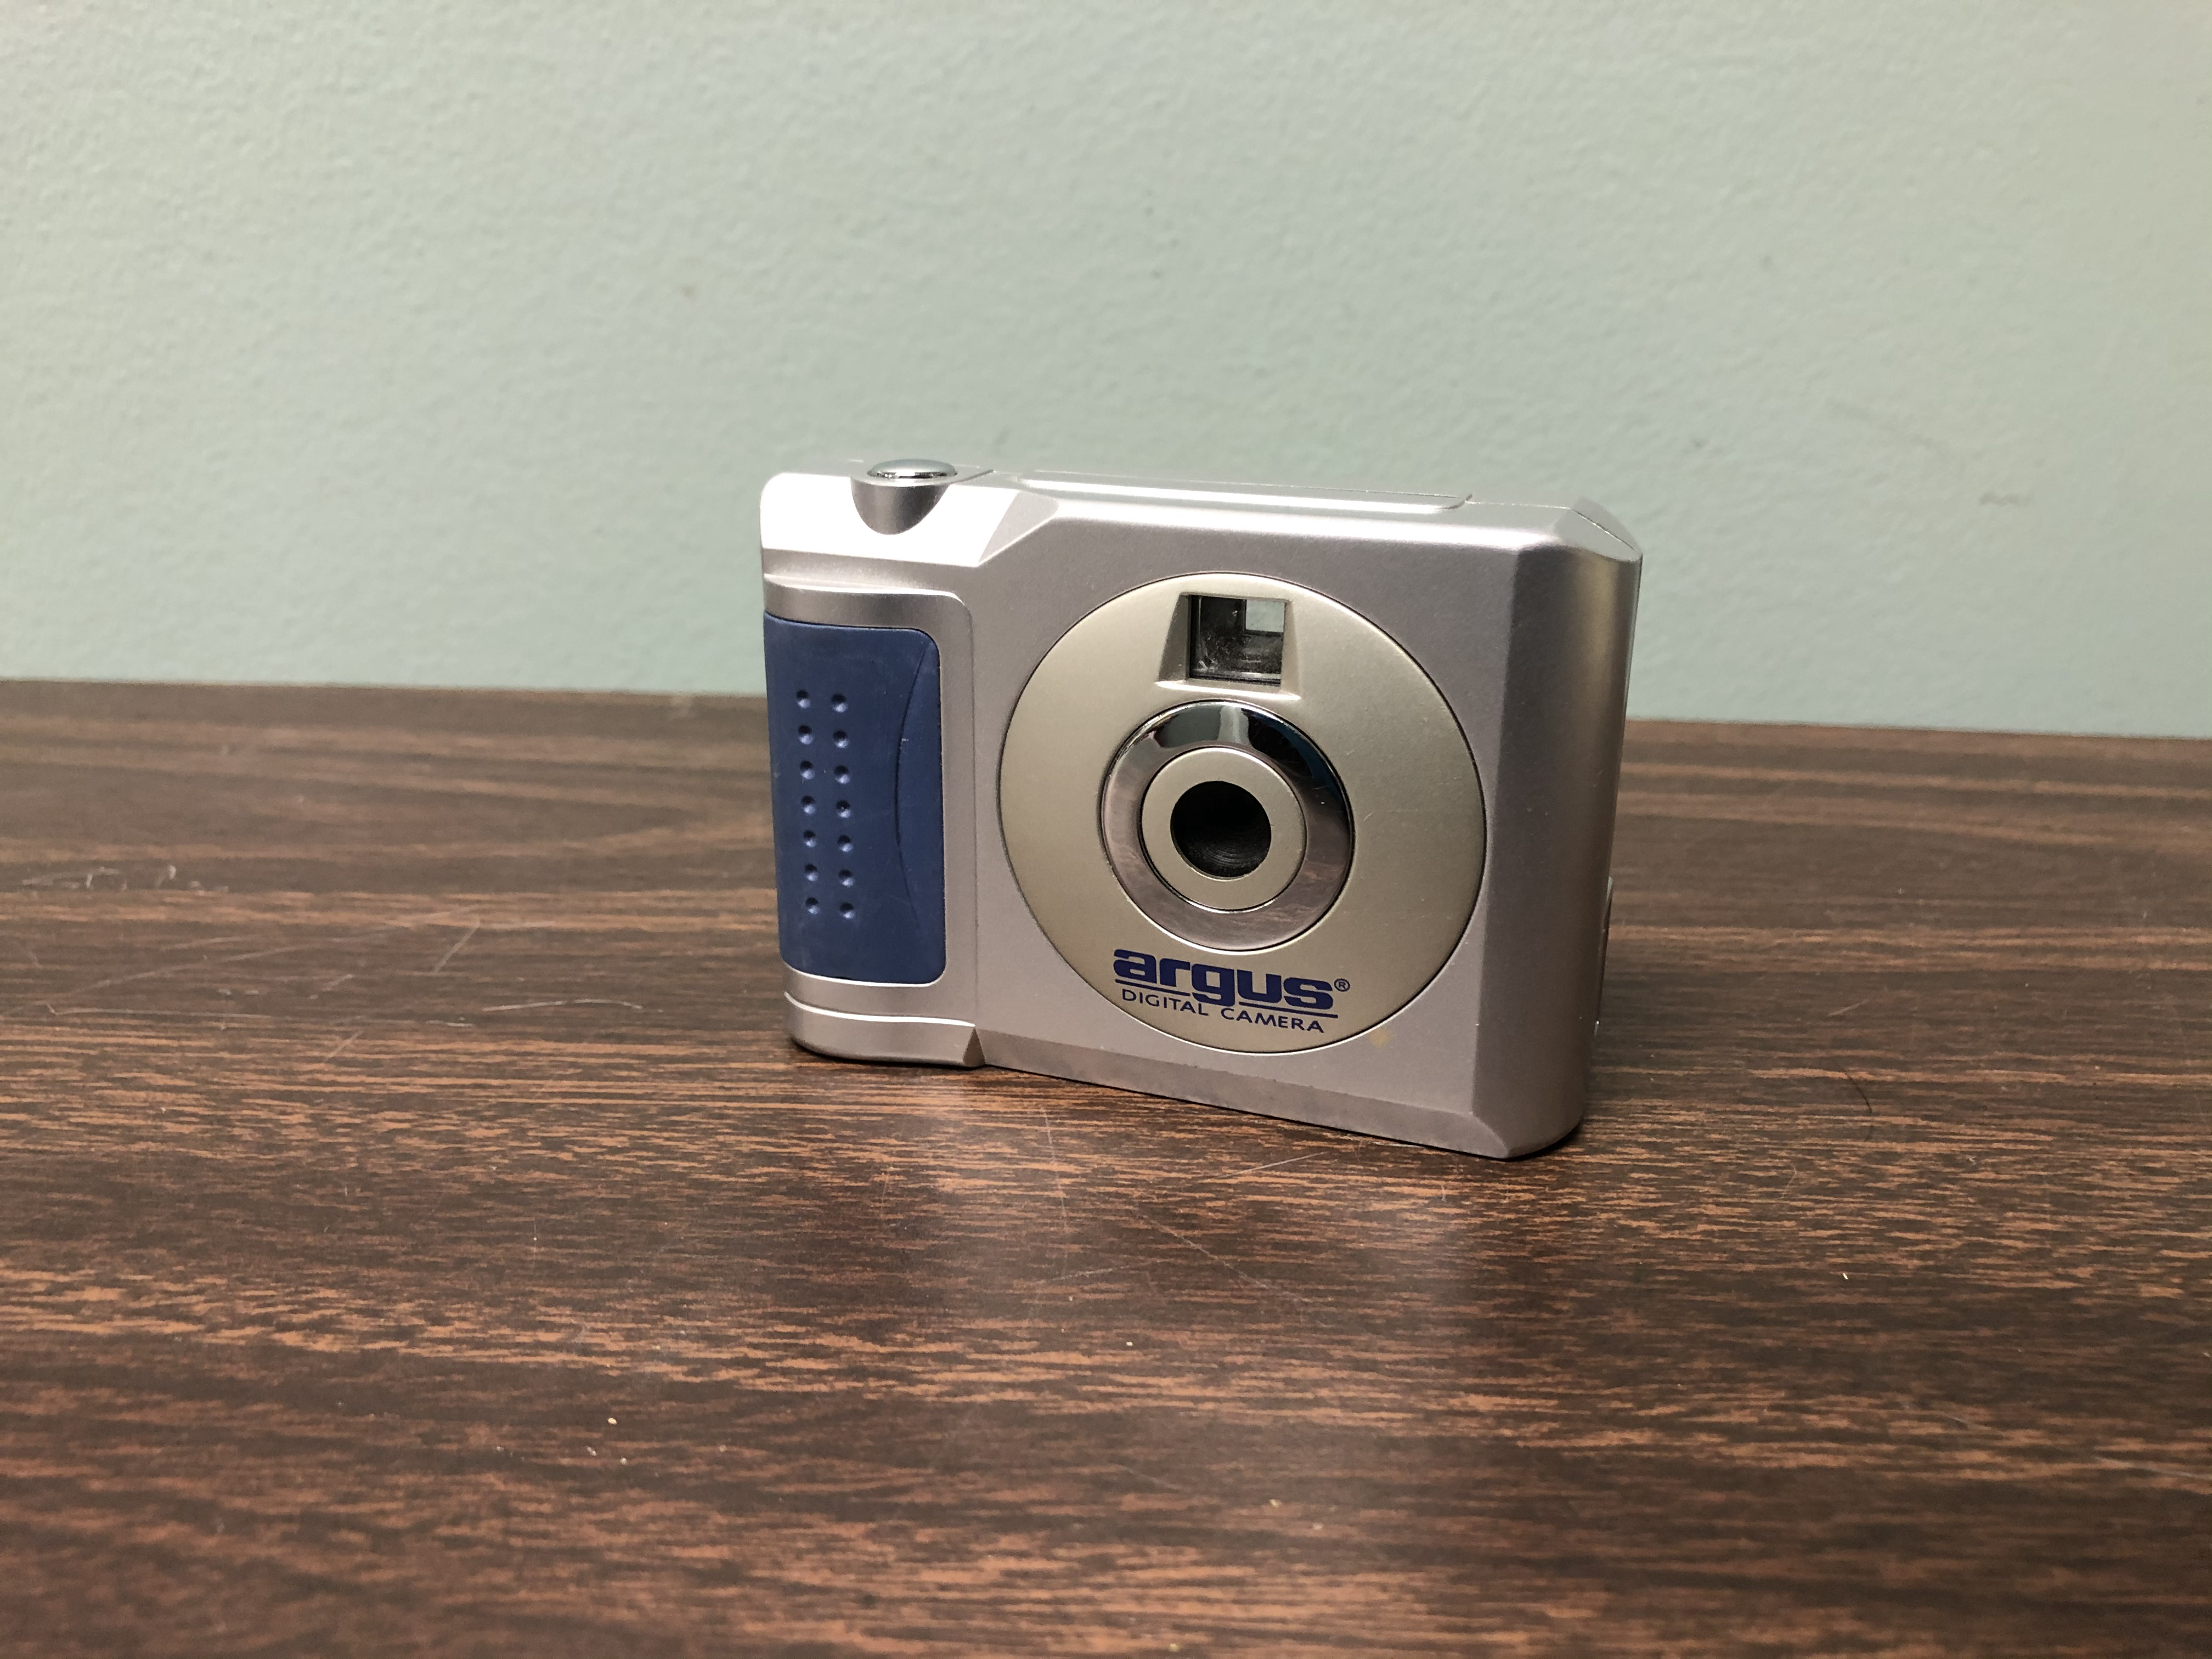 Argus Digital Camera (nonfunctional)